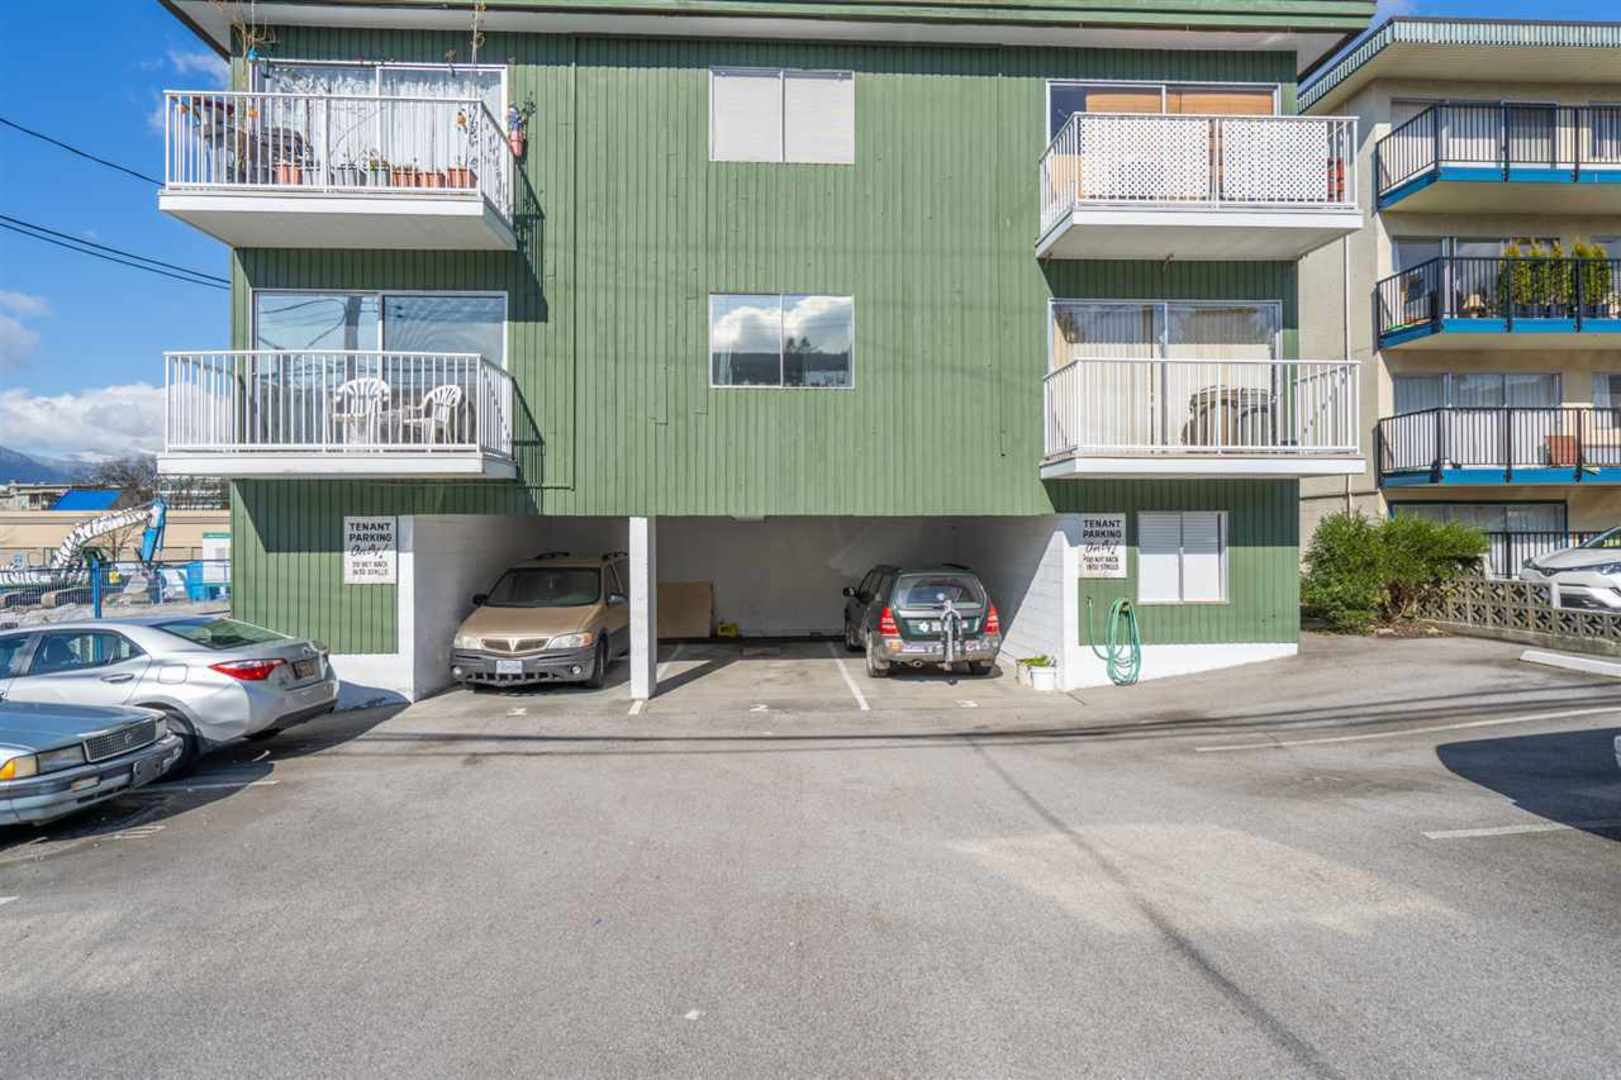 135-e-20th-street-central-lonsdale-north-vancouver-22 at 101 - 135 E 20th Street, Central Lonsdale, North Vancouver